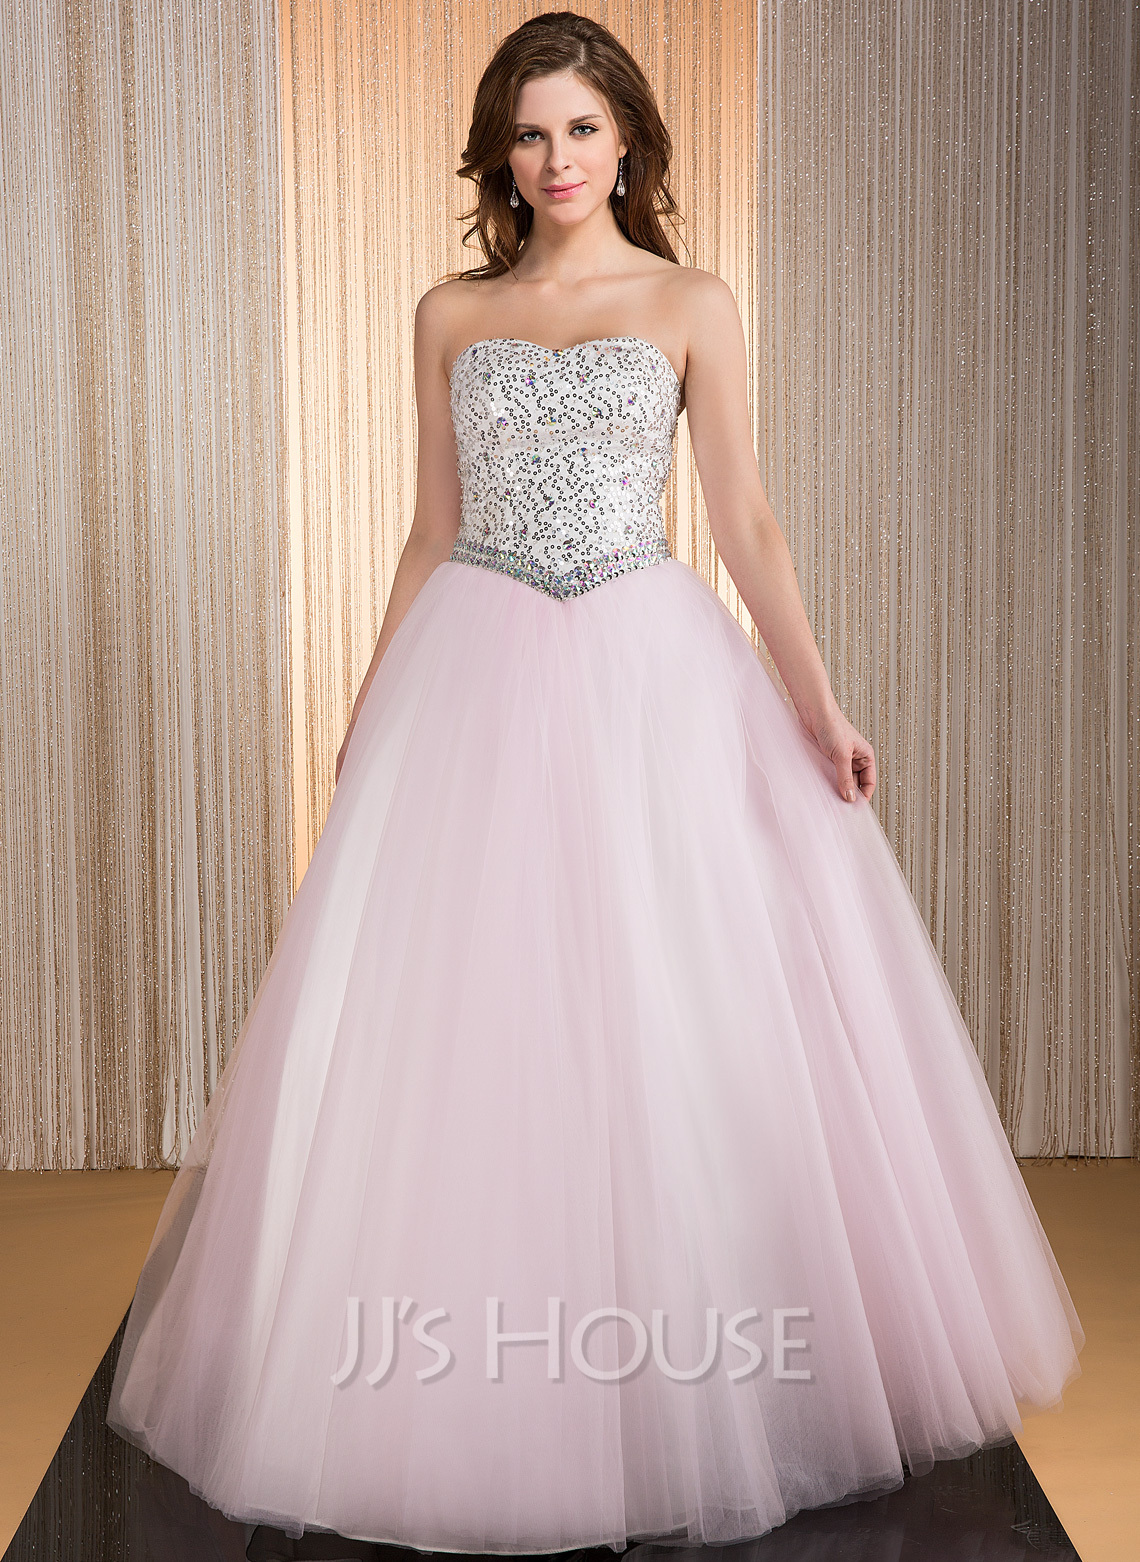 dcdf0dafced1 Ball-Gown Sweetheart Floor-Length Taffeta Tulle Quinceanera Dress With  Beading Sequins. Loading zoom